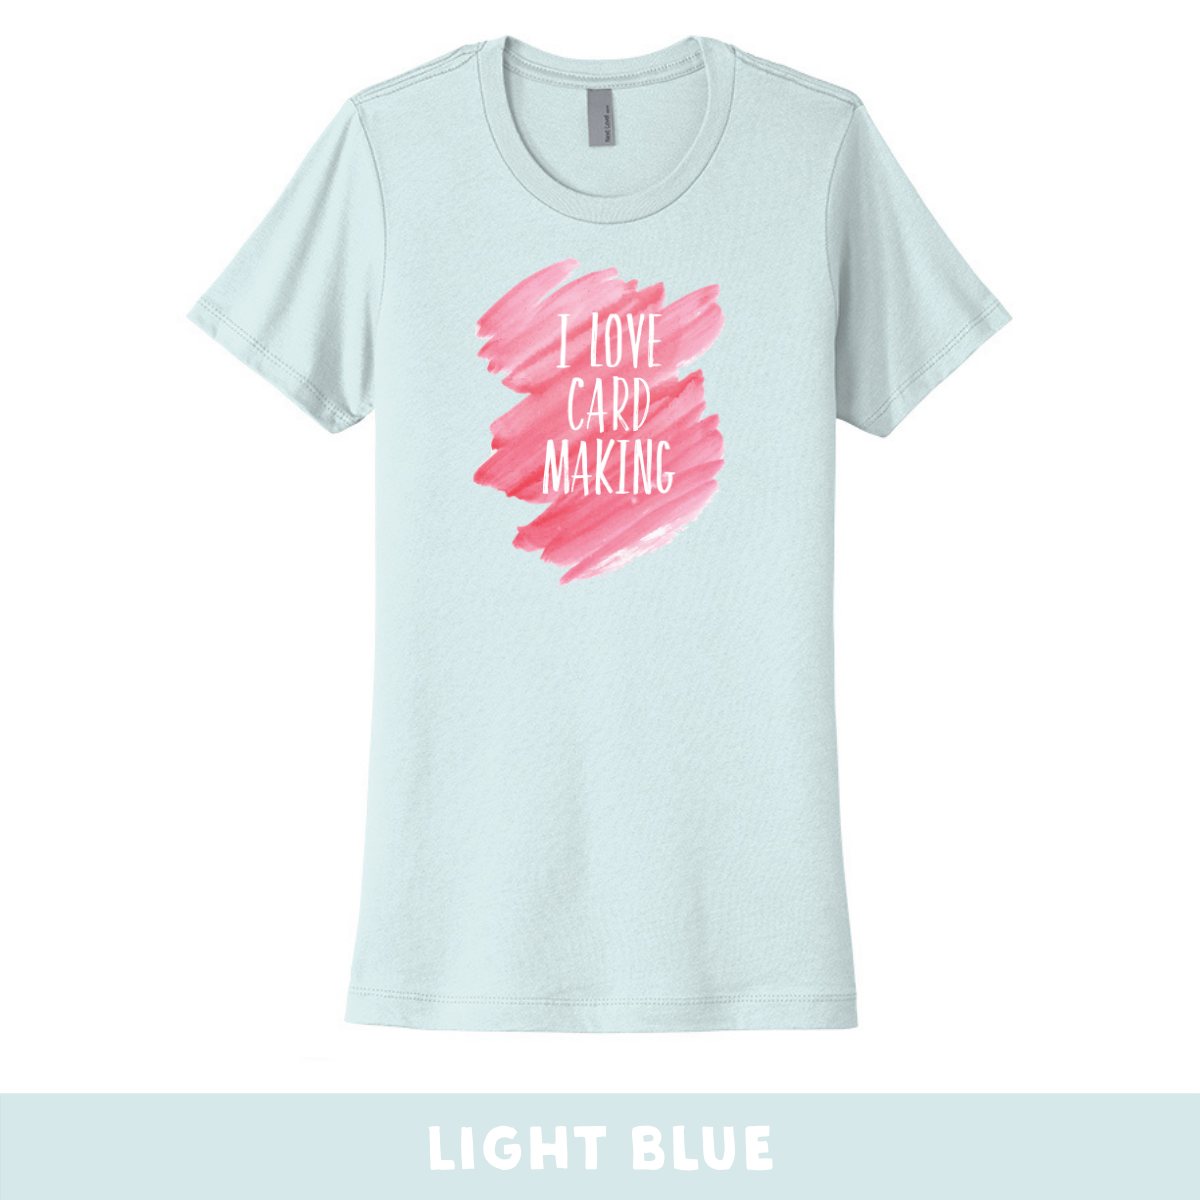 Light Blue - Crew Neck Boyfriend Tee - I Love Cardmaking